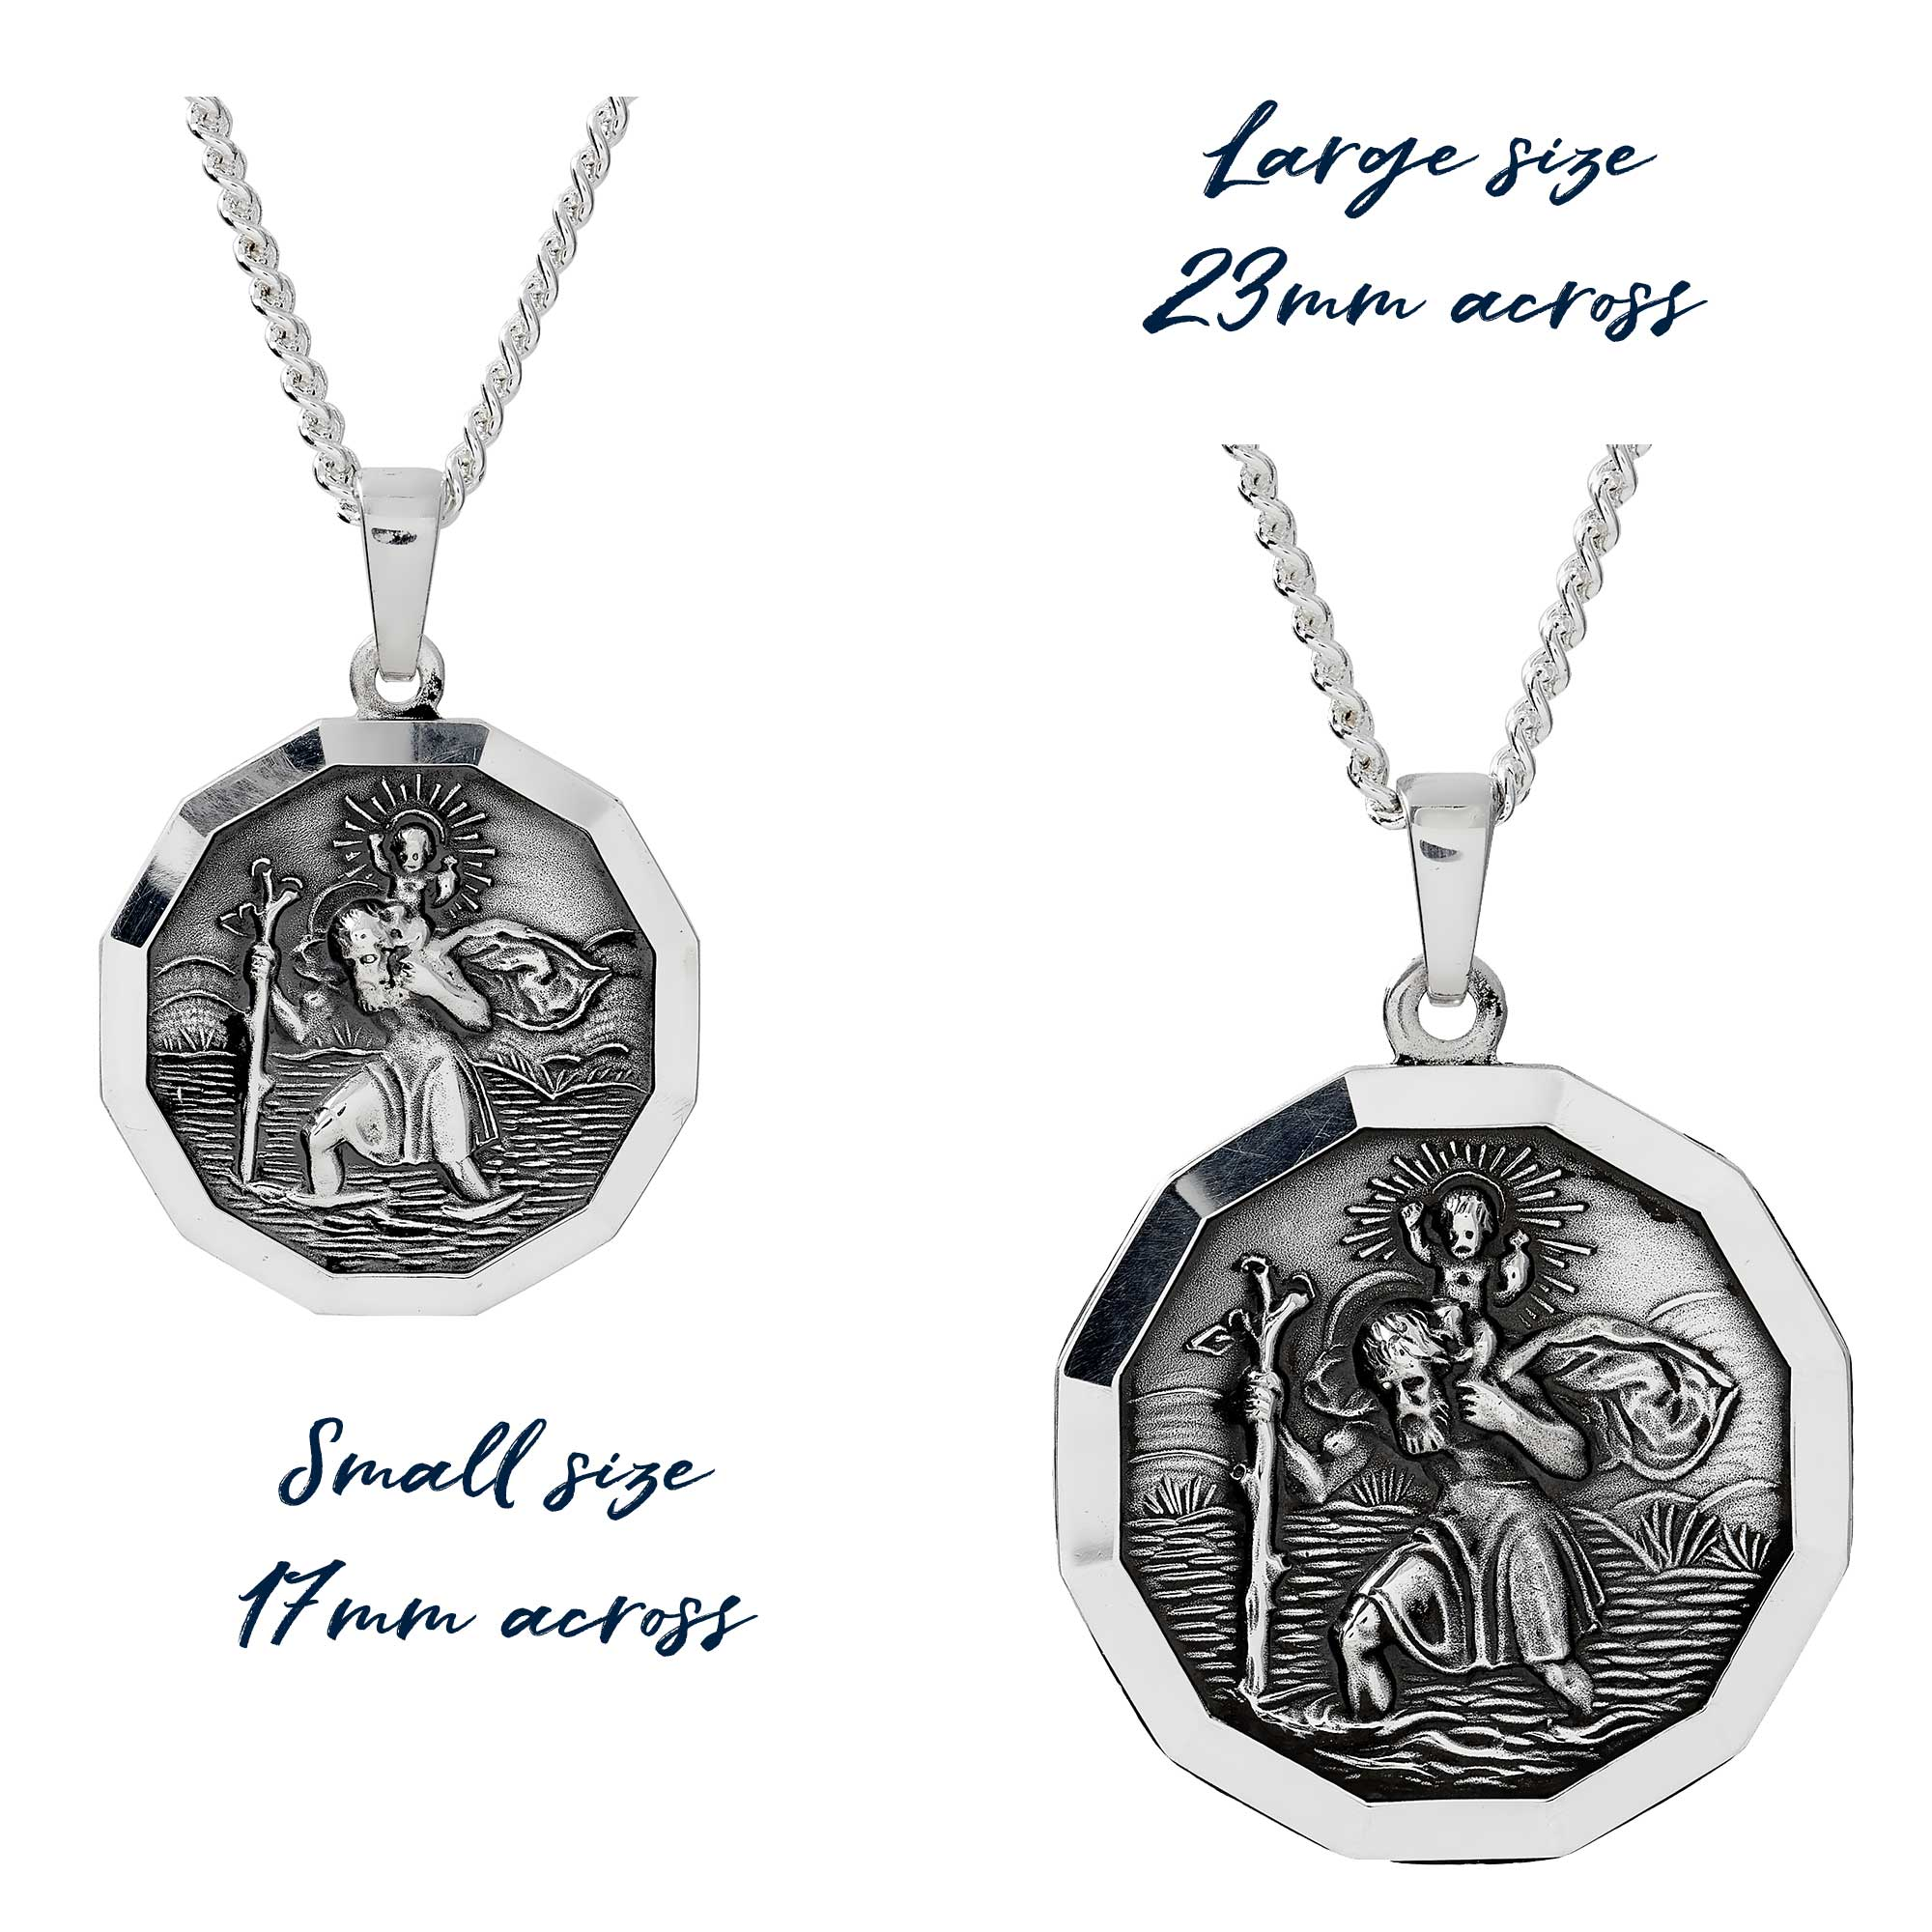 mens and womens size saint christopher pendants off the map premium travel jewelry gifts made in UK